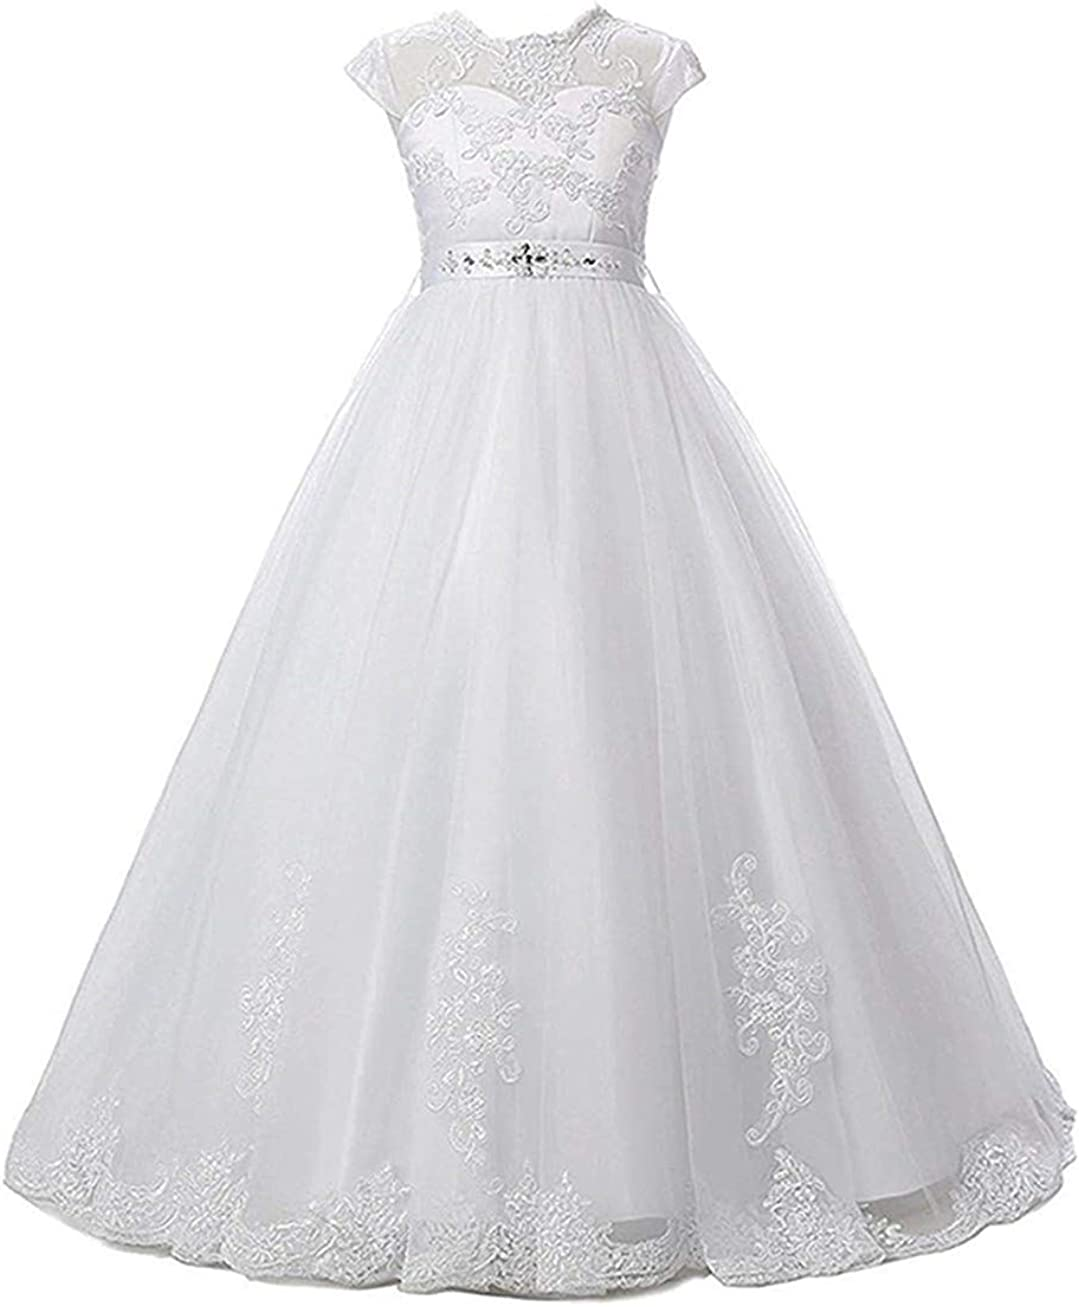 Magicdress White First Communion Baptism Dresses for Girls 20 20 Lace  Princess Flower Girls Gown 20